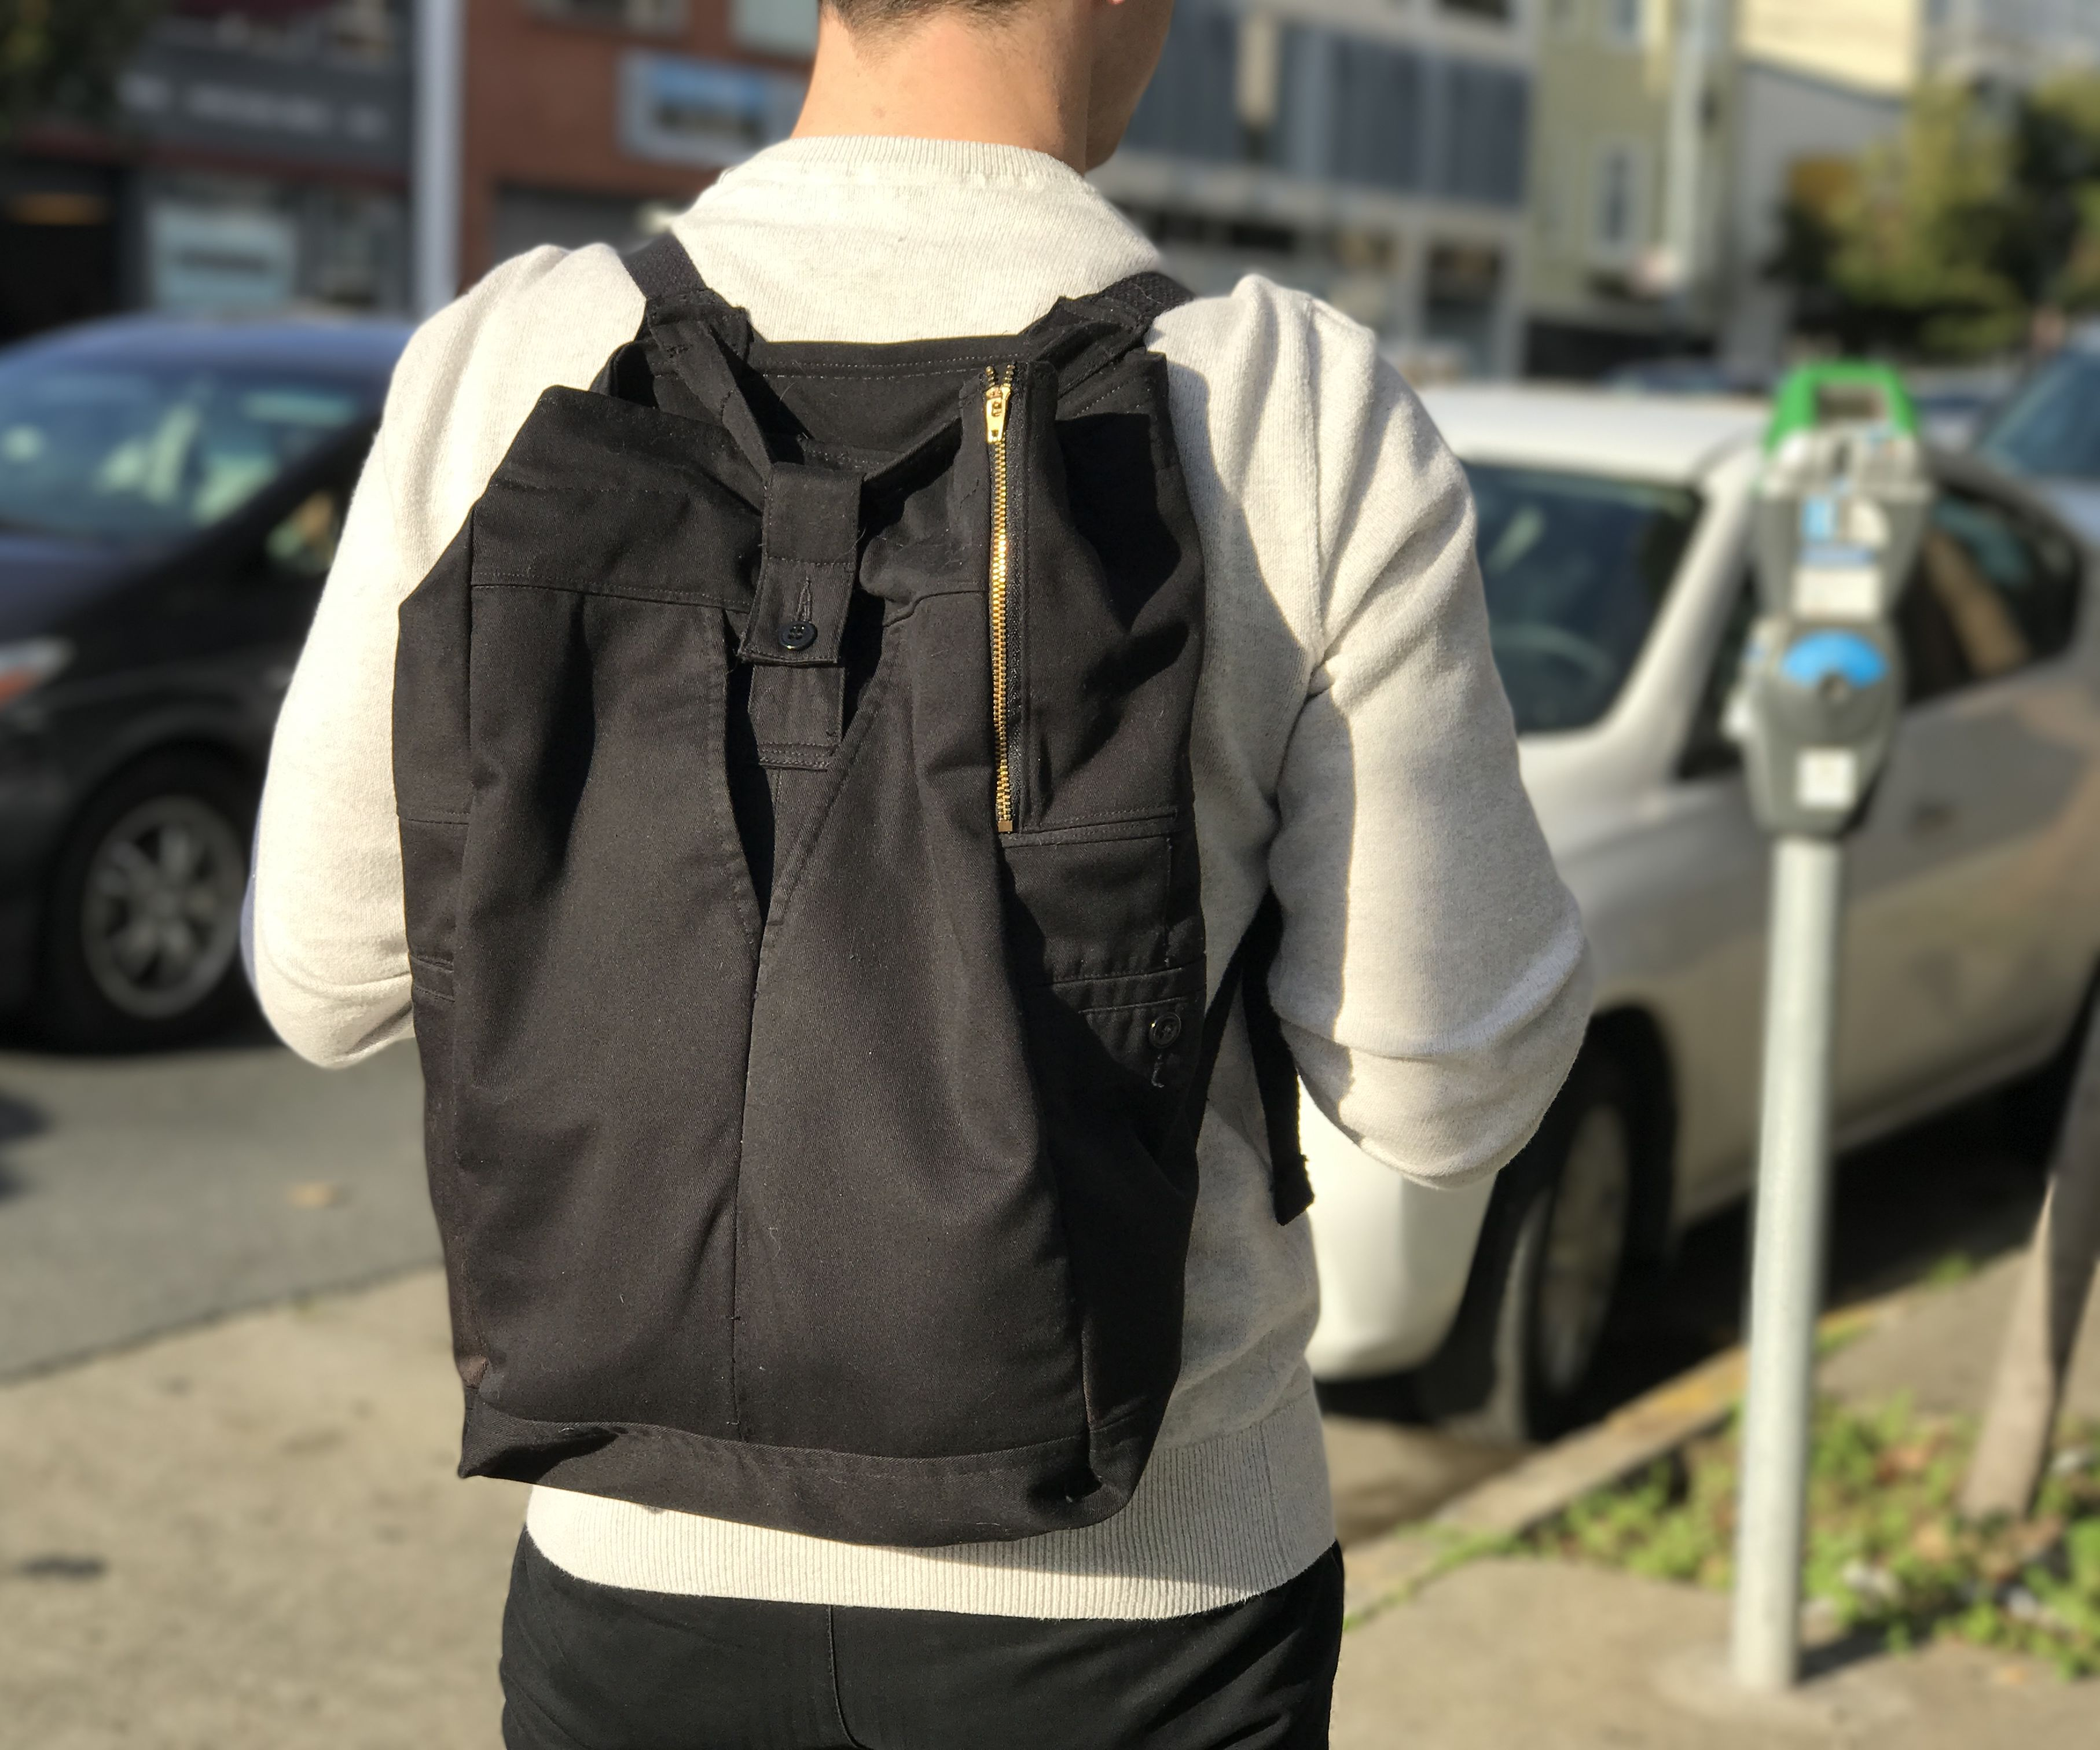 Make a Backpack Out of Old Pants